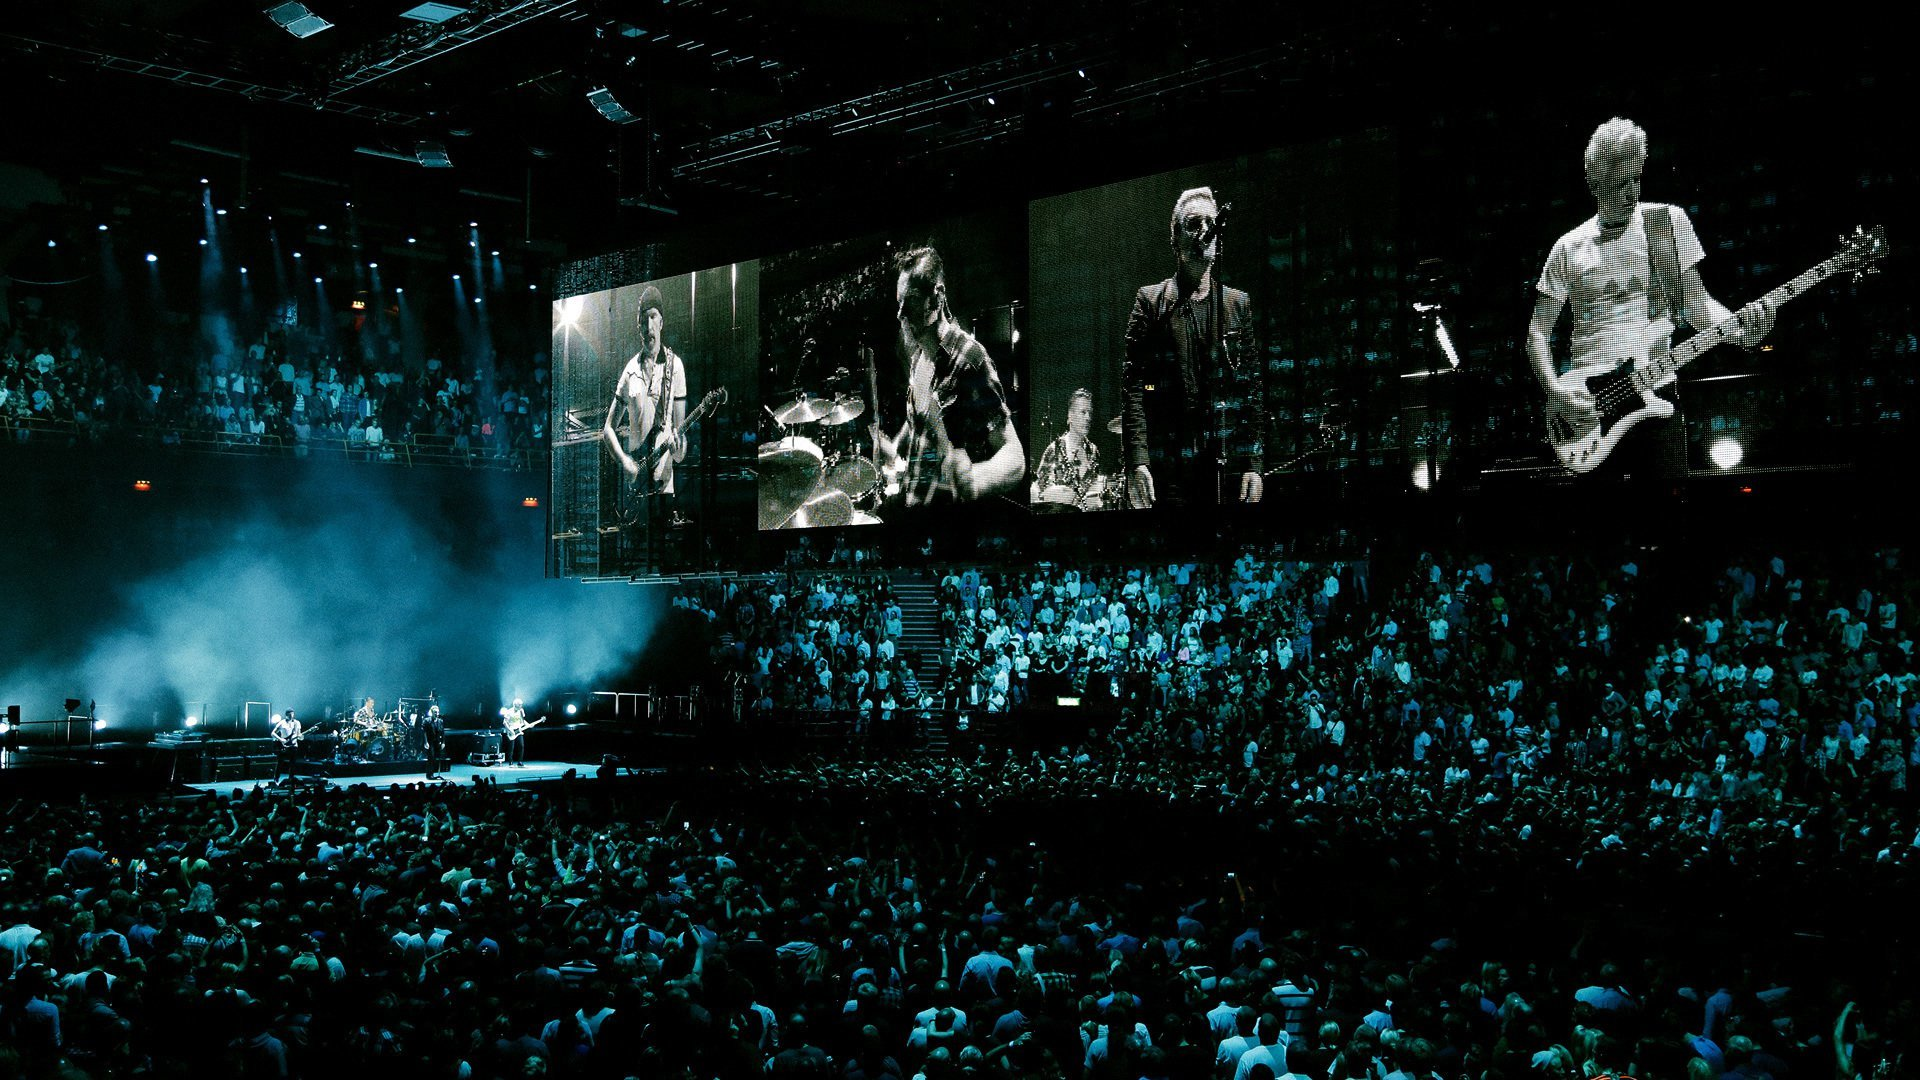 u2 wallpapers 1920x1080 full hd 1080p desktop backgrounds